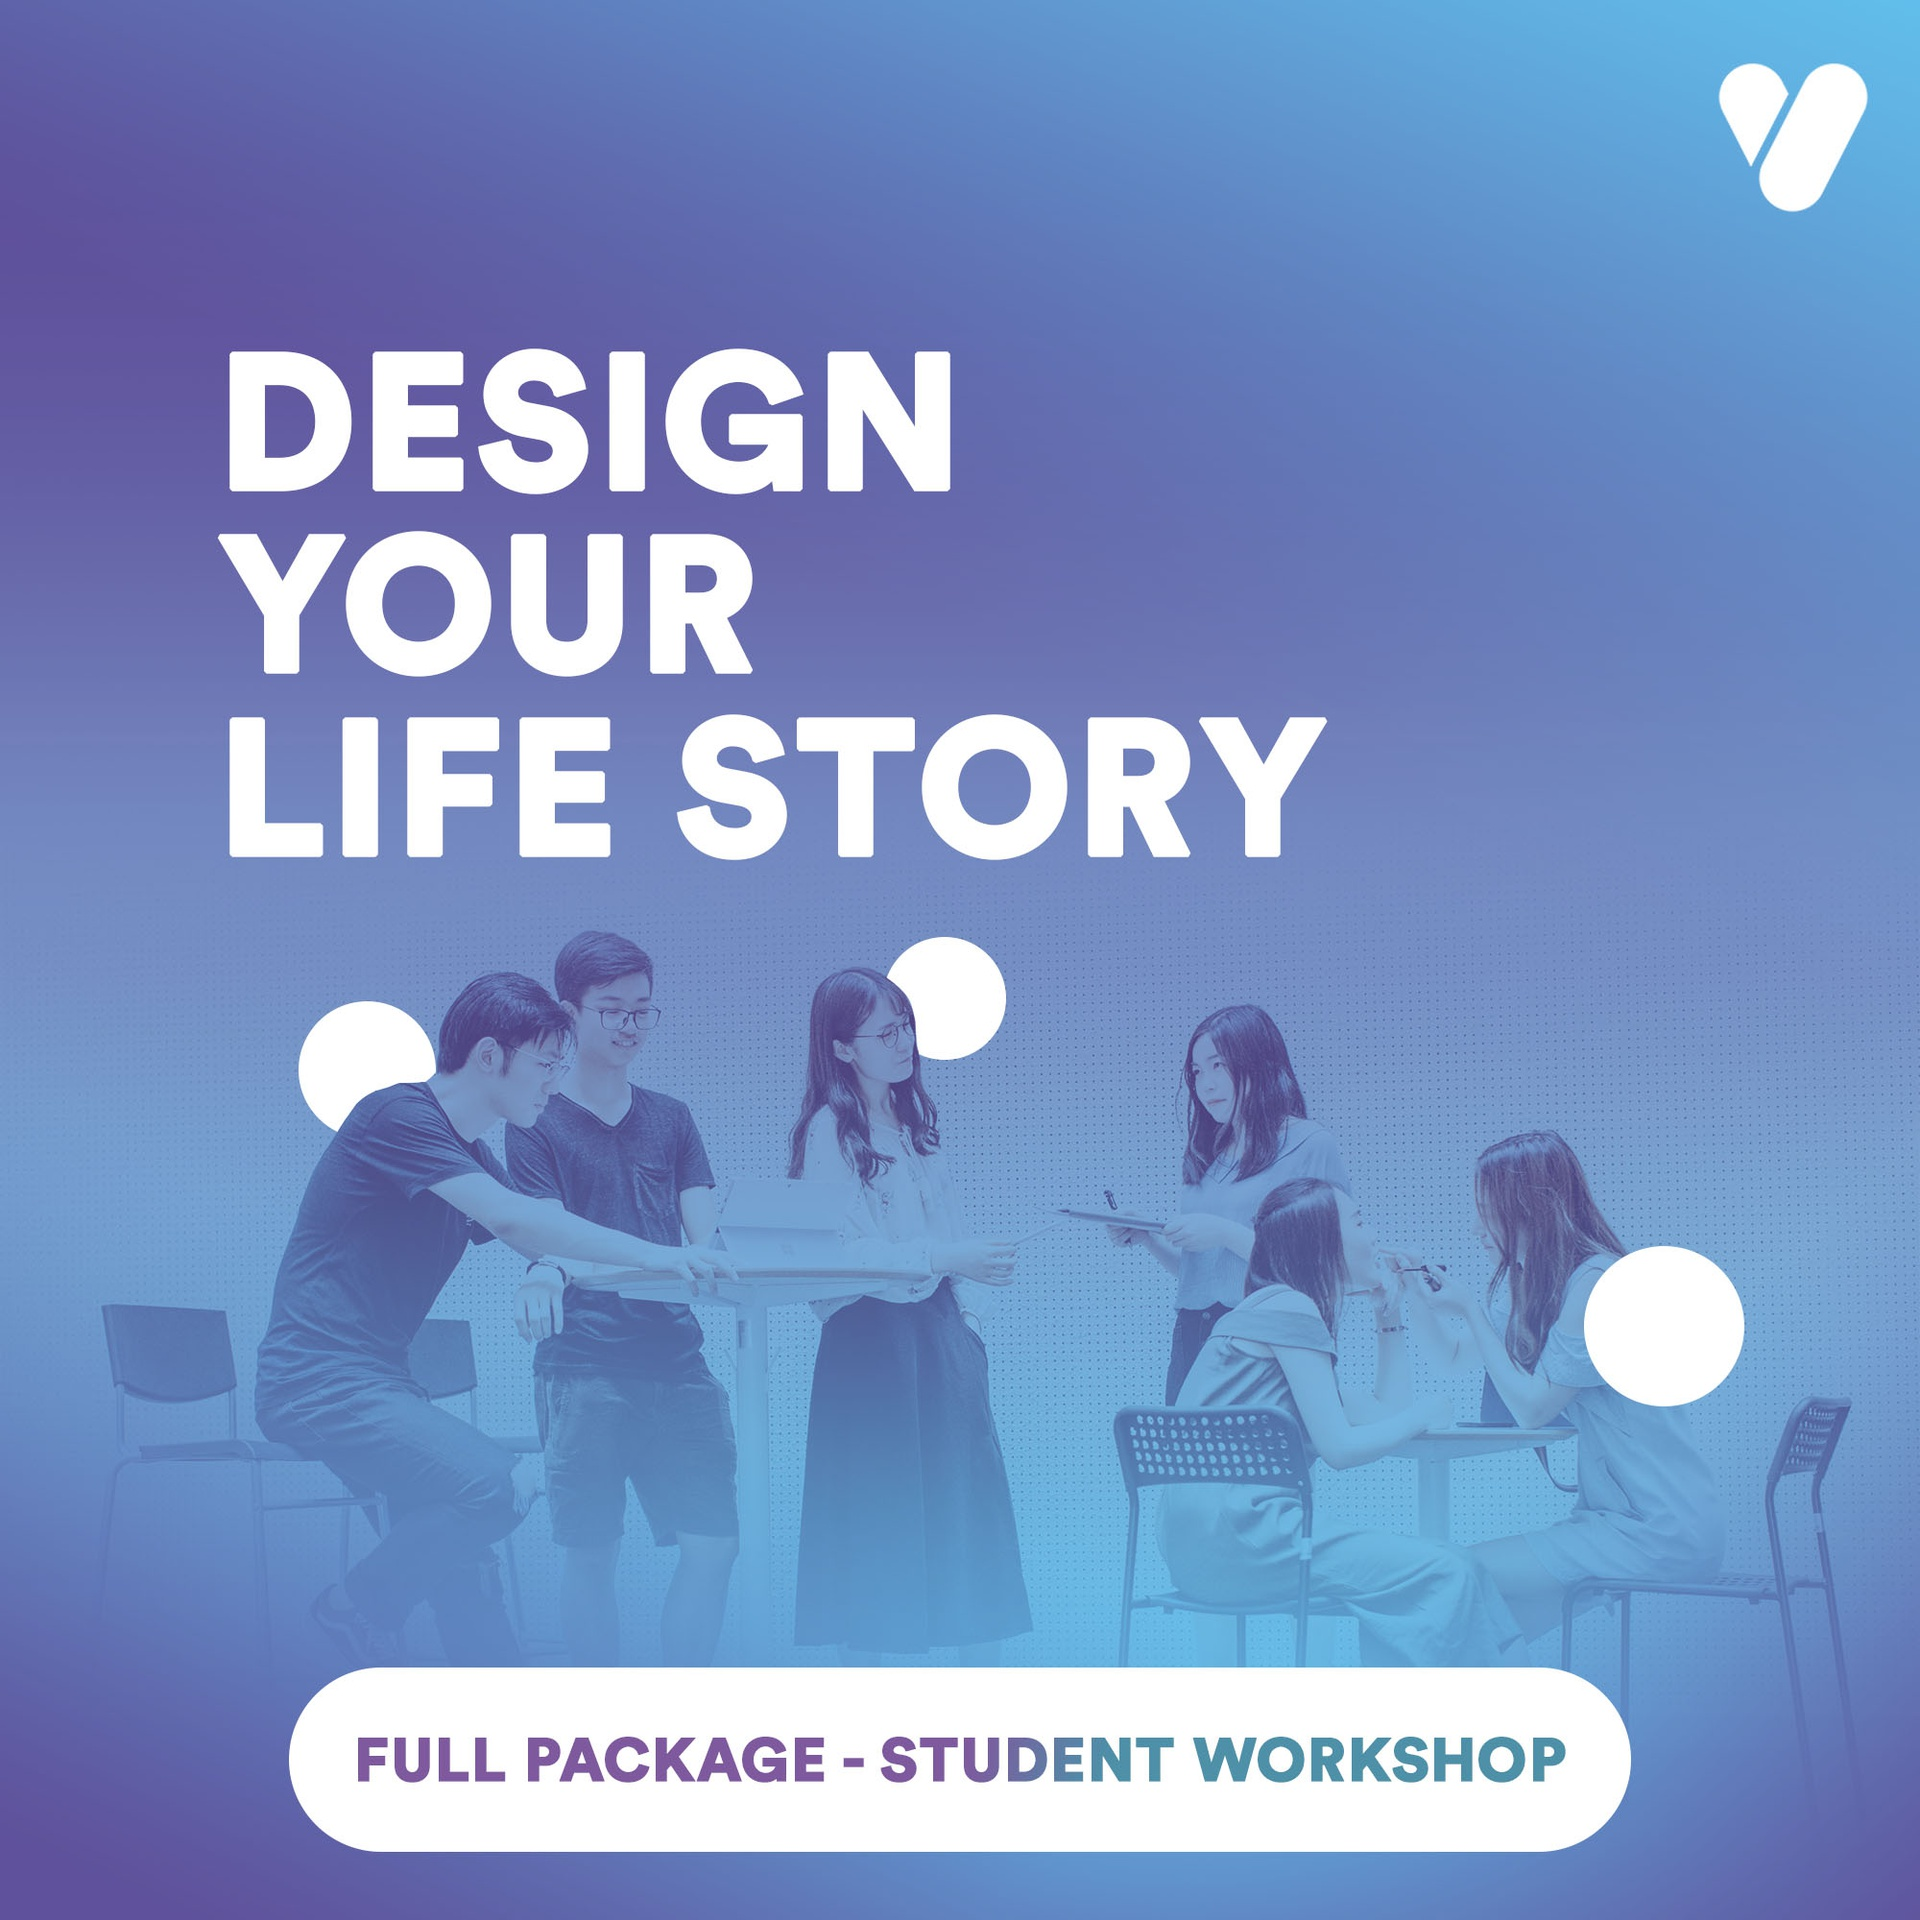 Design Your Life Story: How to Be Successful 101